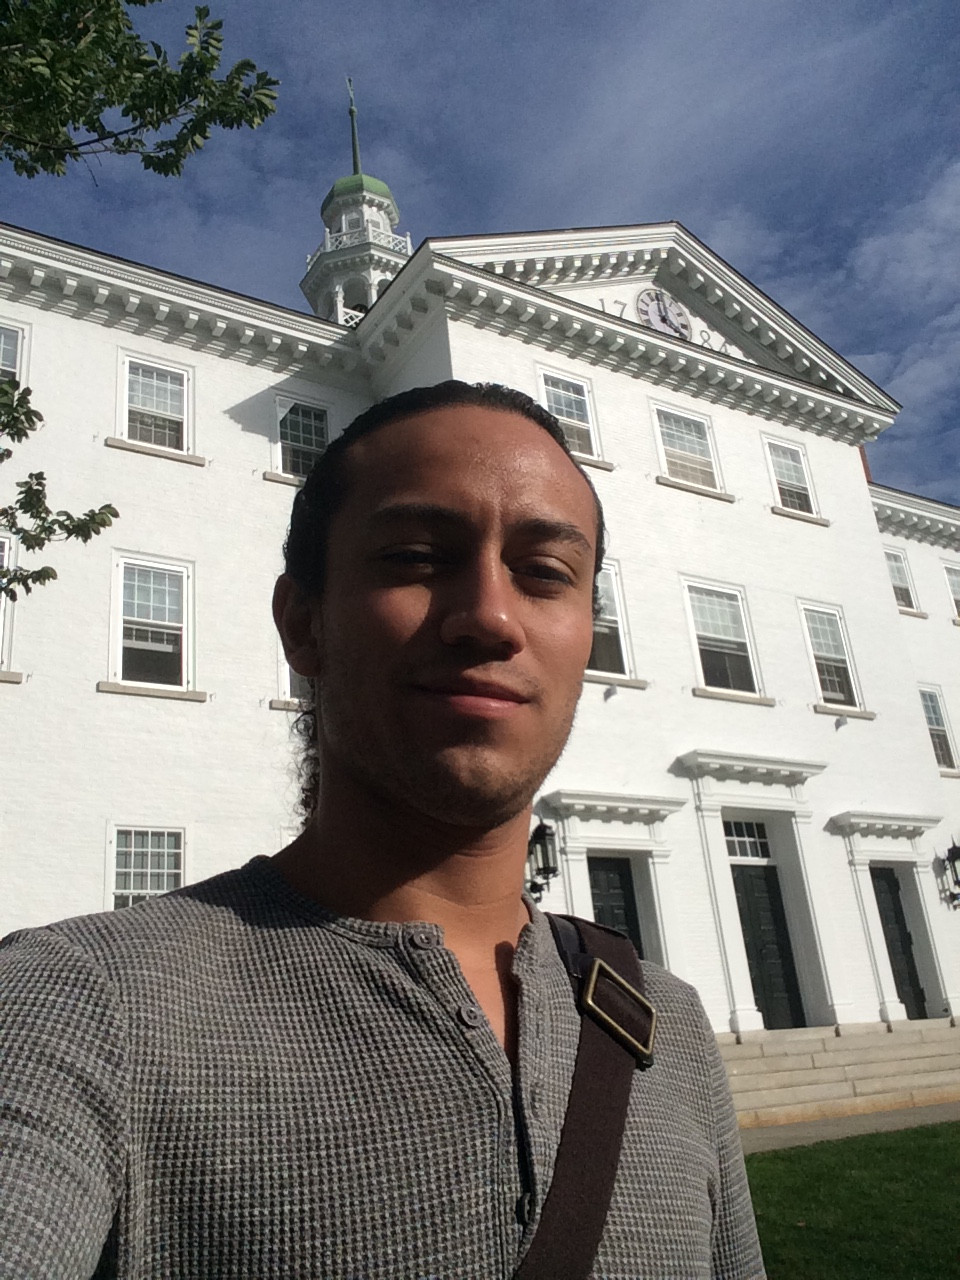 Rafael in front of Dartmouth Hall